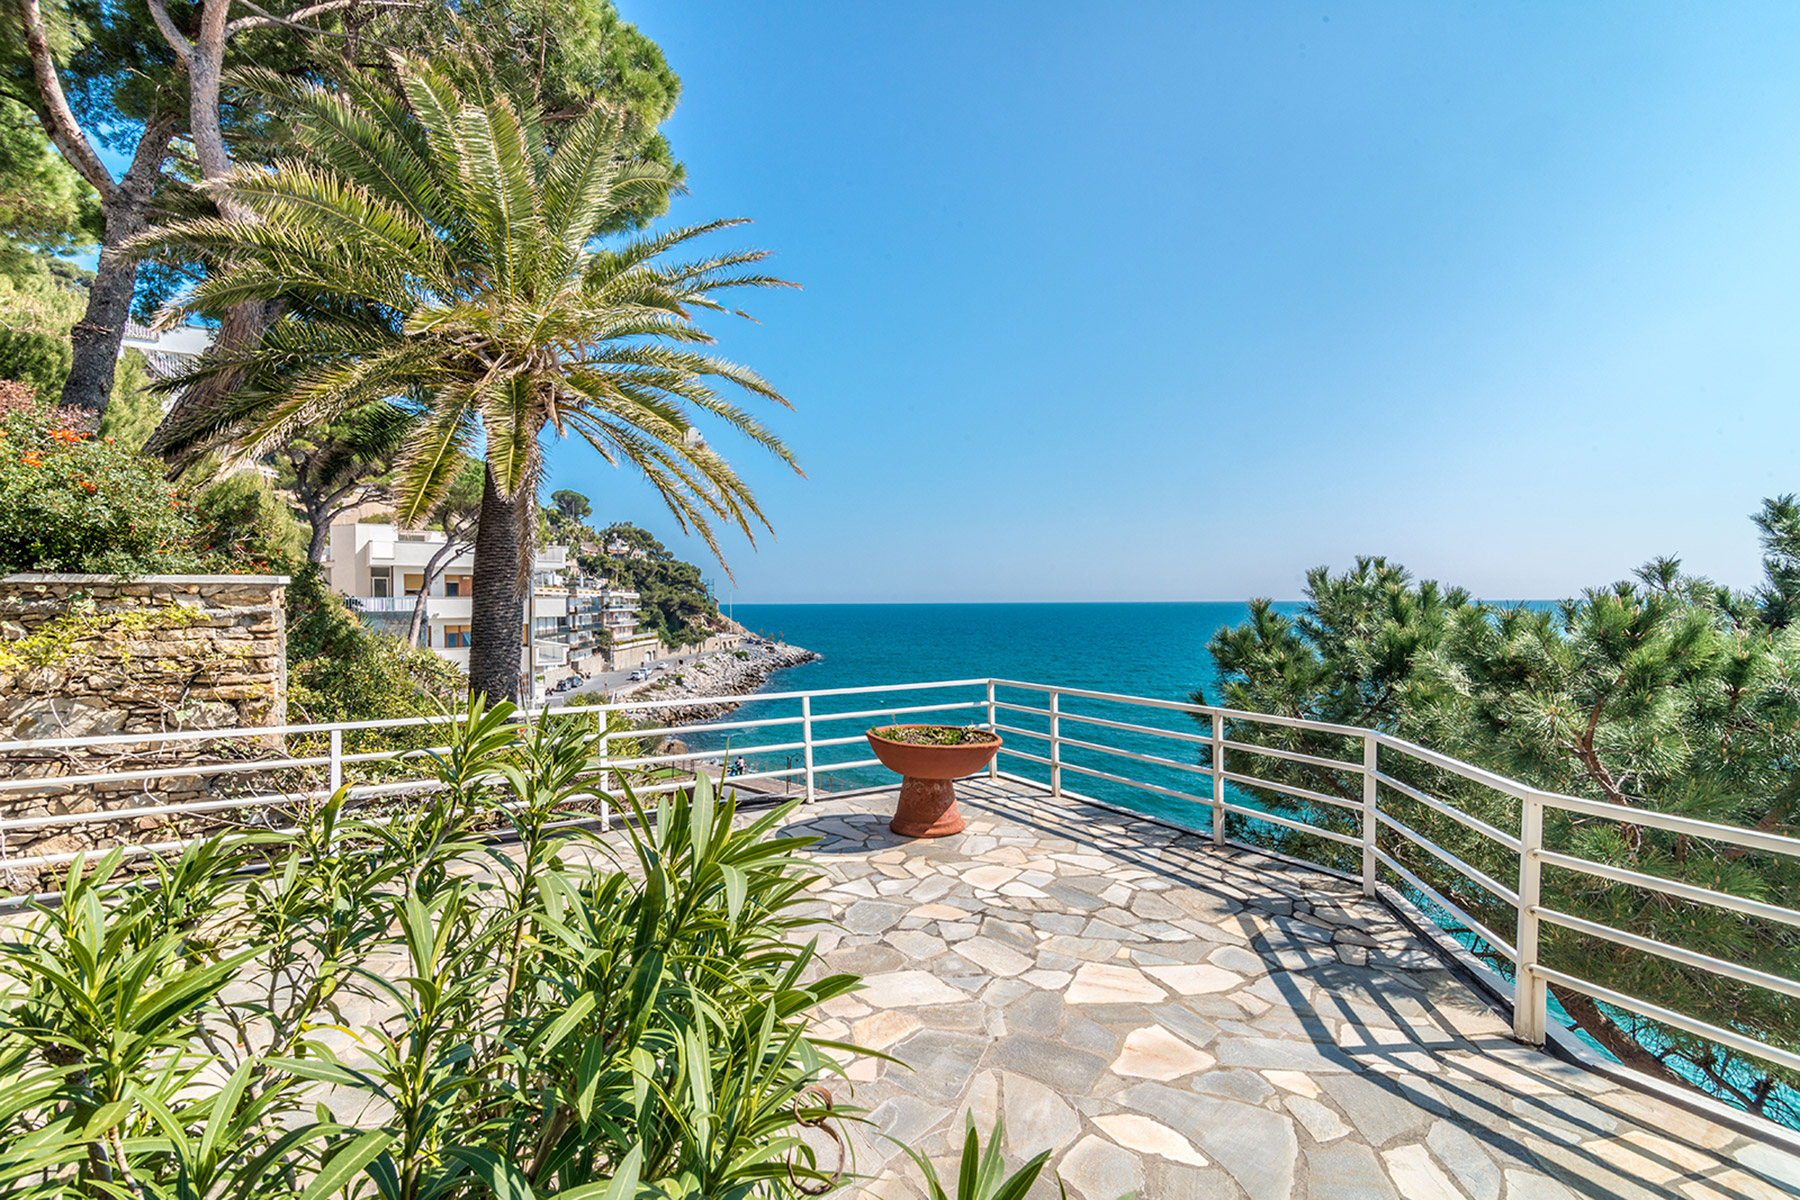 Additional photo for property listing at Magnificent seaview Villa in Alassio Passeggiata Luigi Cadorna Alassio, Savona 17021 Italy